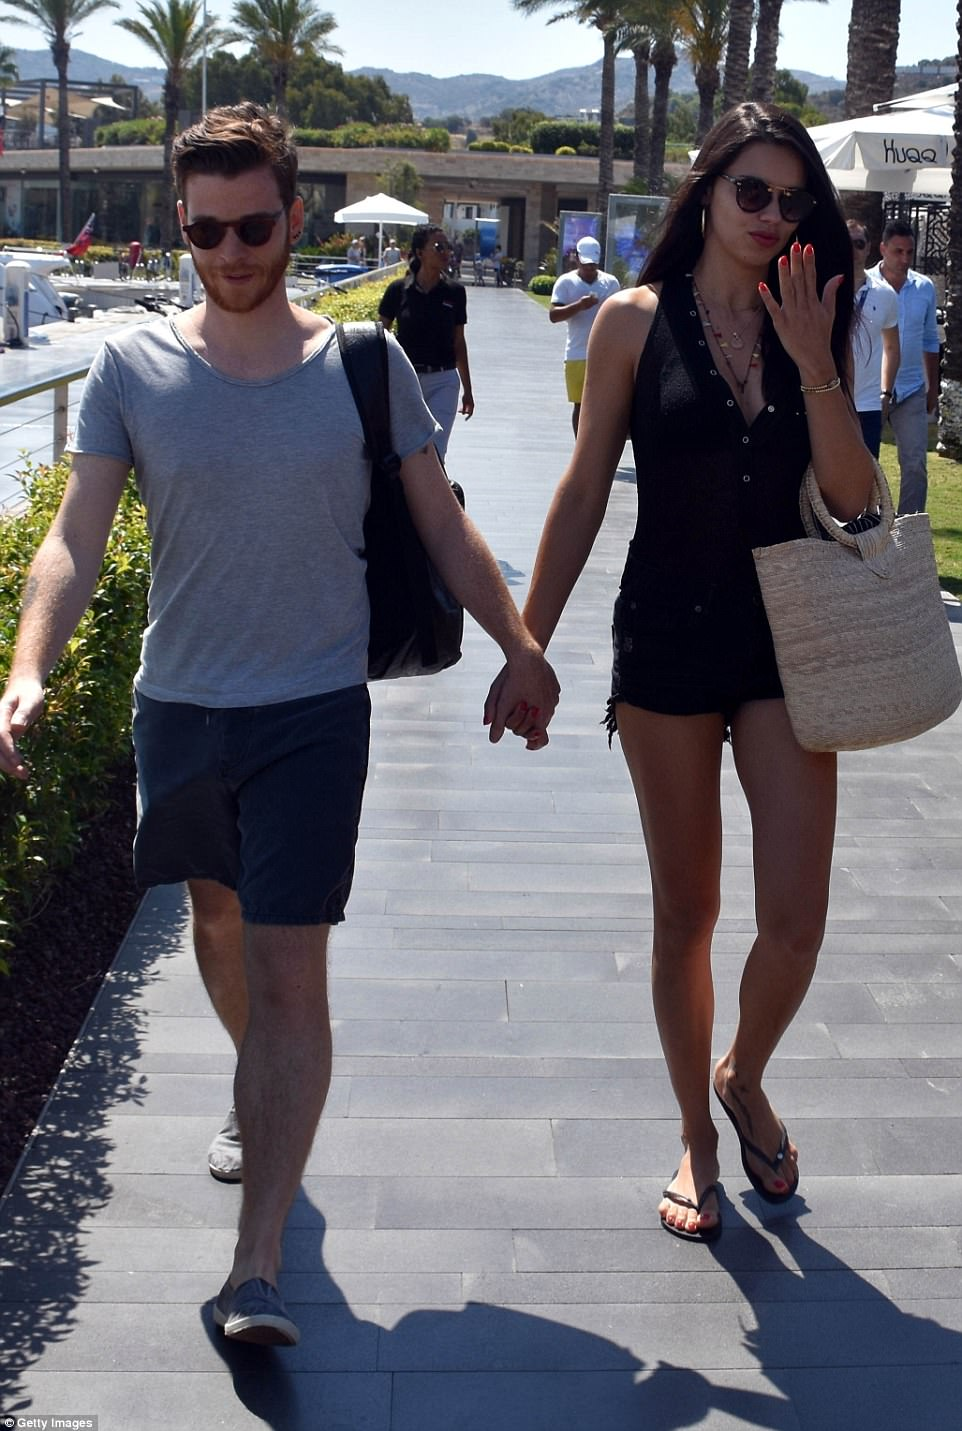 Sun-drenched: Metin threw a plain grey t-shirt over his torso and seemed delighted to be in the company of his new love